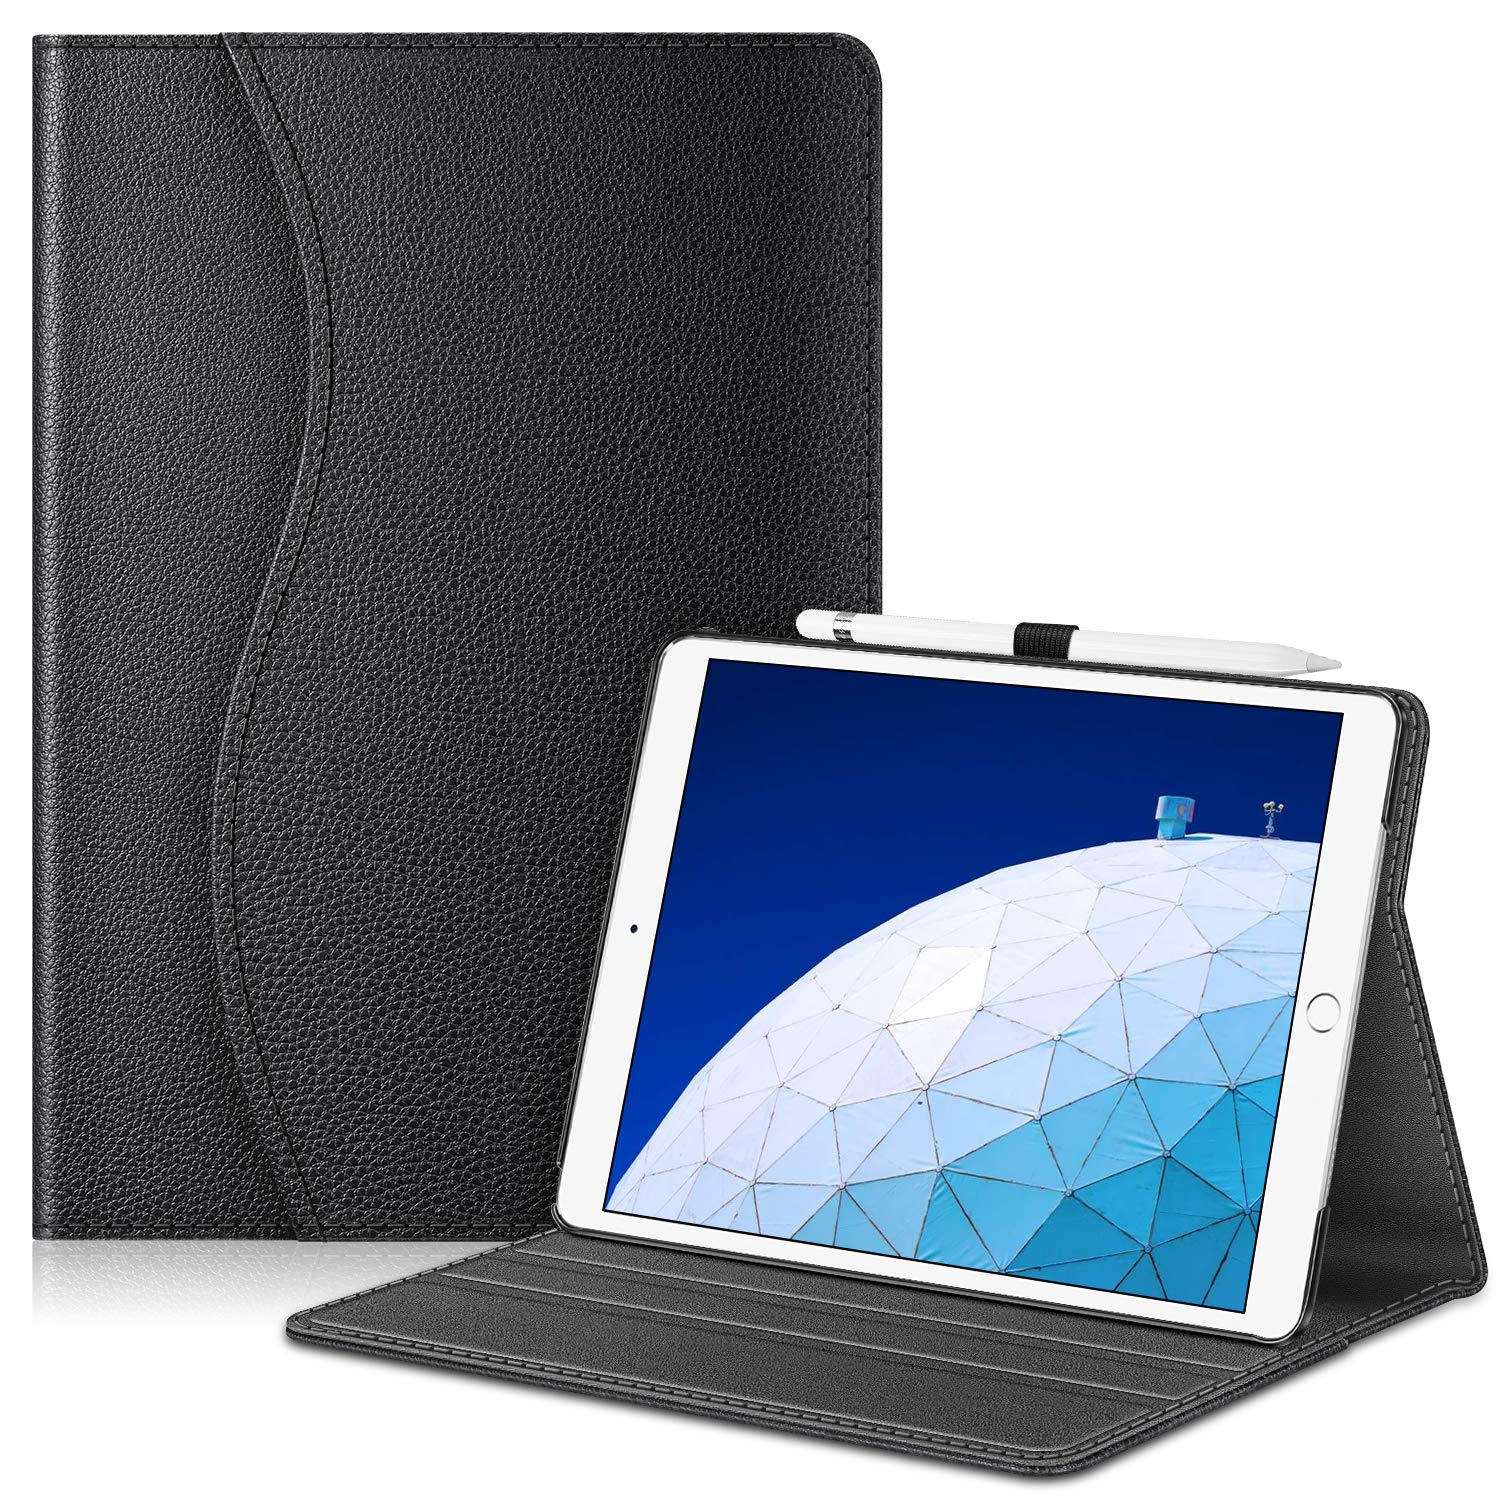 """Fintie Case for iPad Air (3rd Gen) 10.5"""" 2019 / iPad Pro 10.5"""" 2017- [Sleek Shield] Premium PU Leather Slim Fit Multi Angle Stand Cover with Pocket, Pencil Holder, Auto Wake/Sleep, Black"""